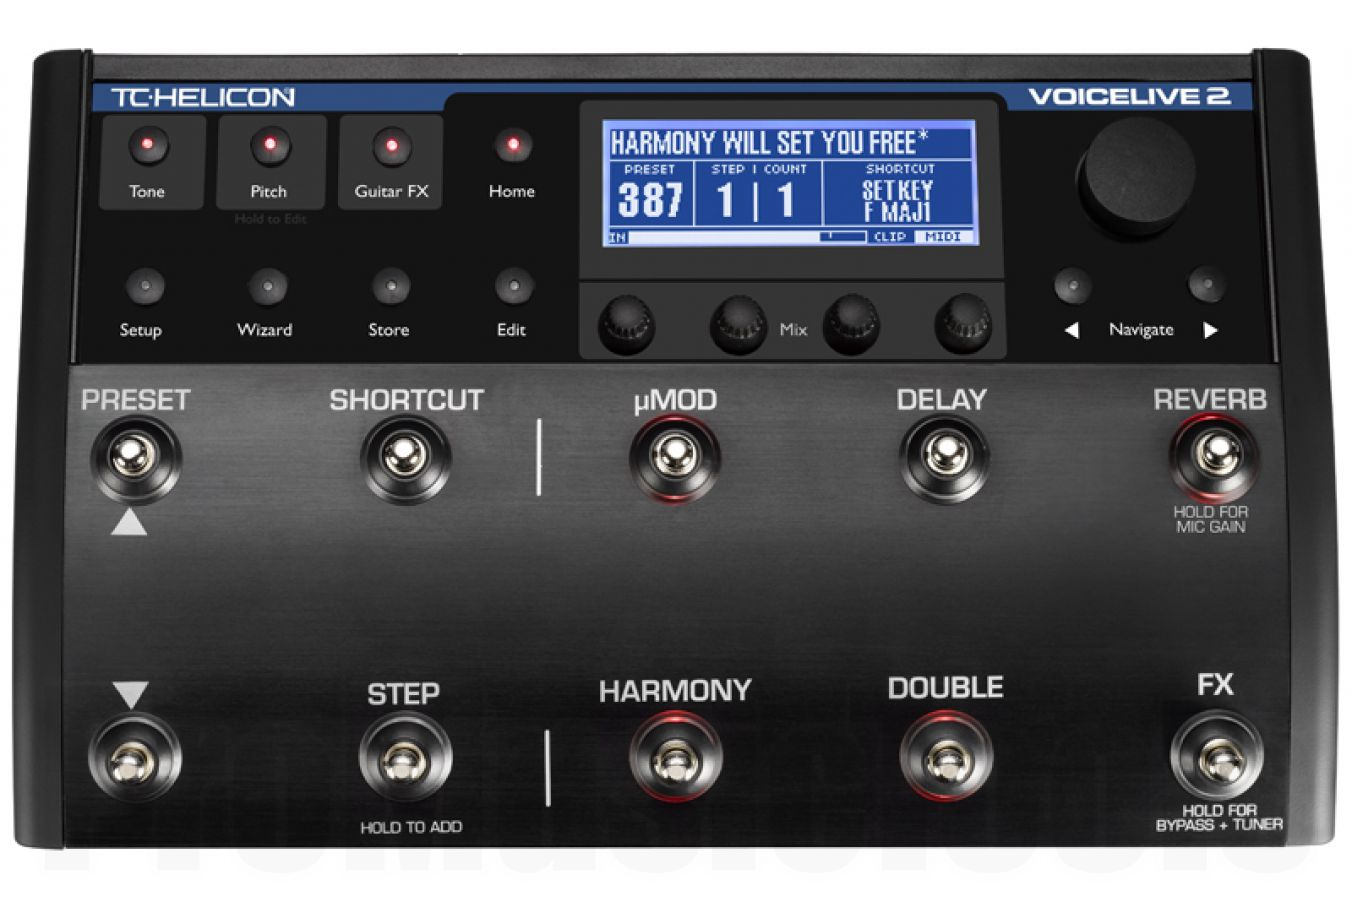 TC Helicon VoiceLive 2 - demo